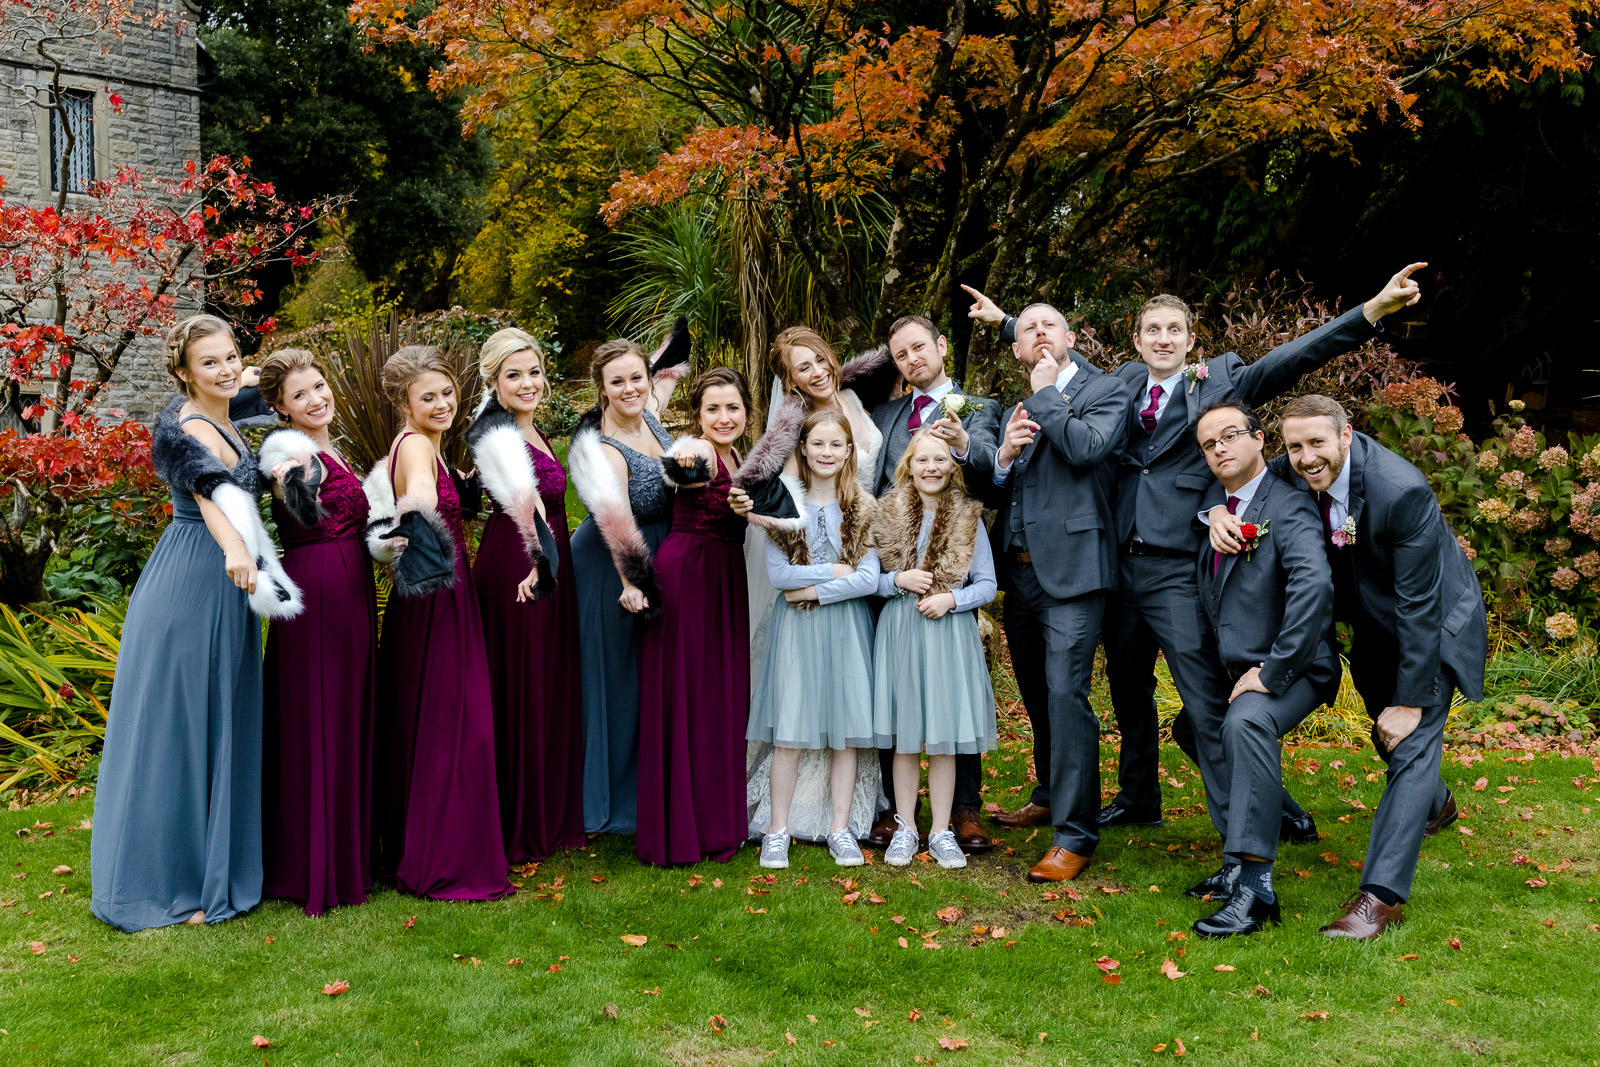 Miskin Manor Wedding Photography - Art by Design Photography - Wedding Party